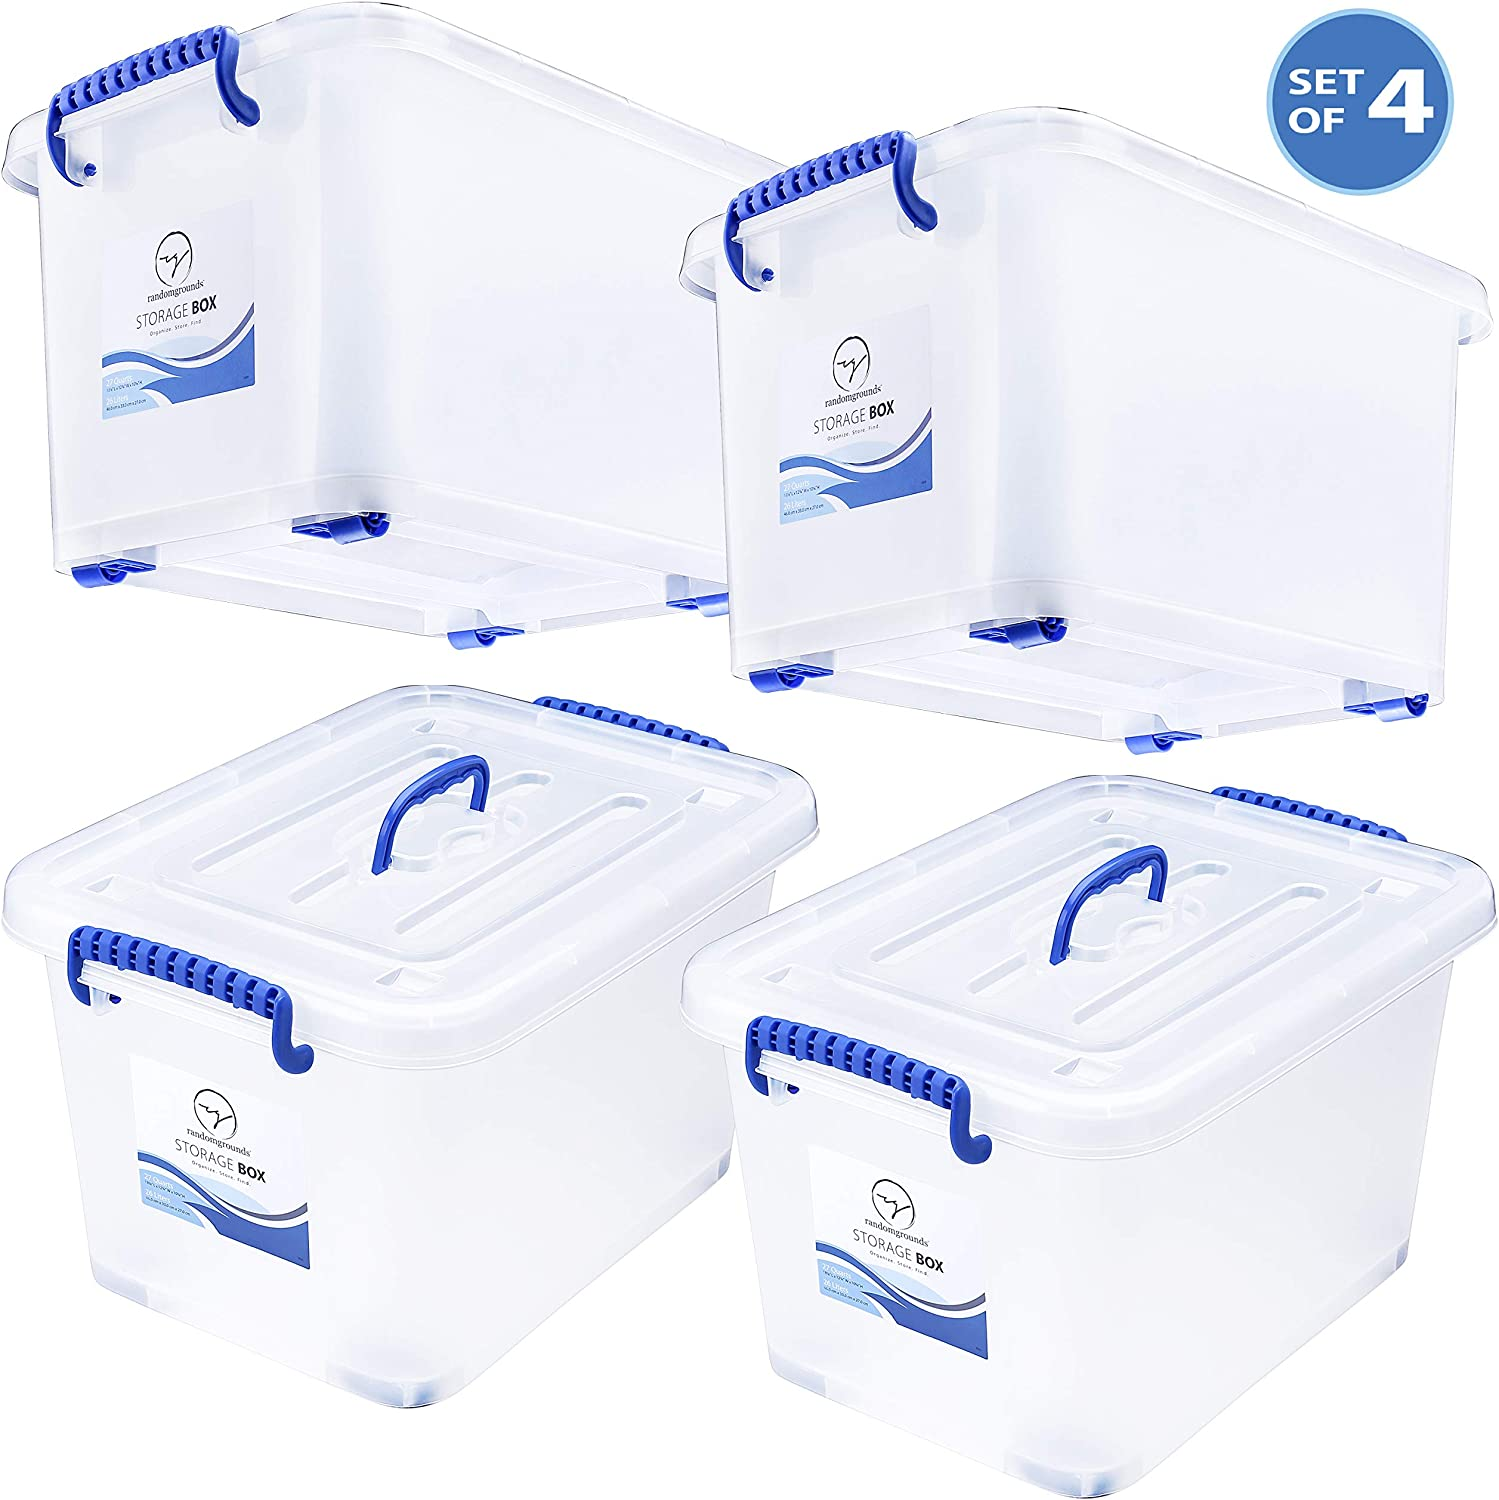 Storage Bins with Lids and Wheels - Great for Toys Shoes Clothes Bed Craft Tools Closet Pantry Kitchen Office Organization - Plastic Stackable Tote Box Containers - Semi Clear White, 27 Quart Set of 4